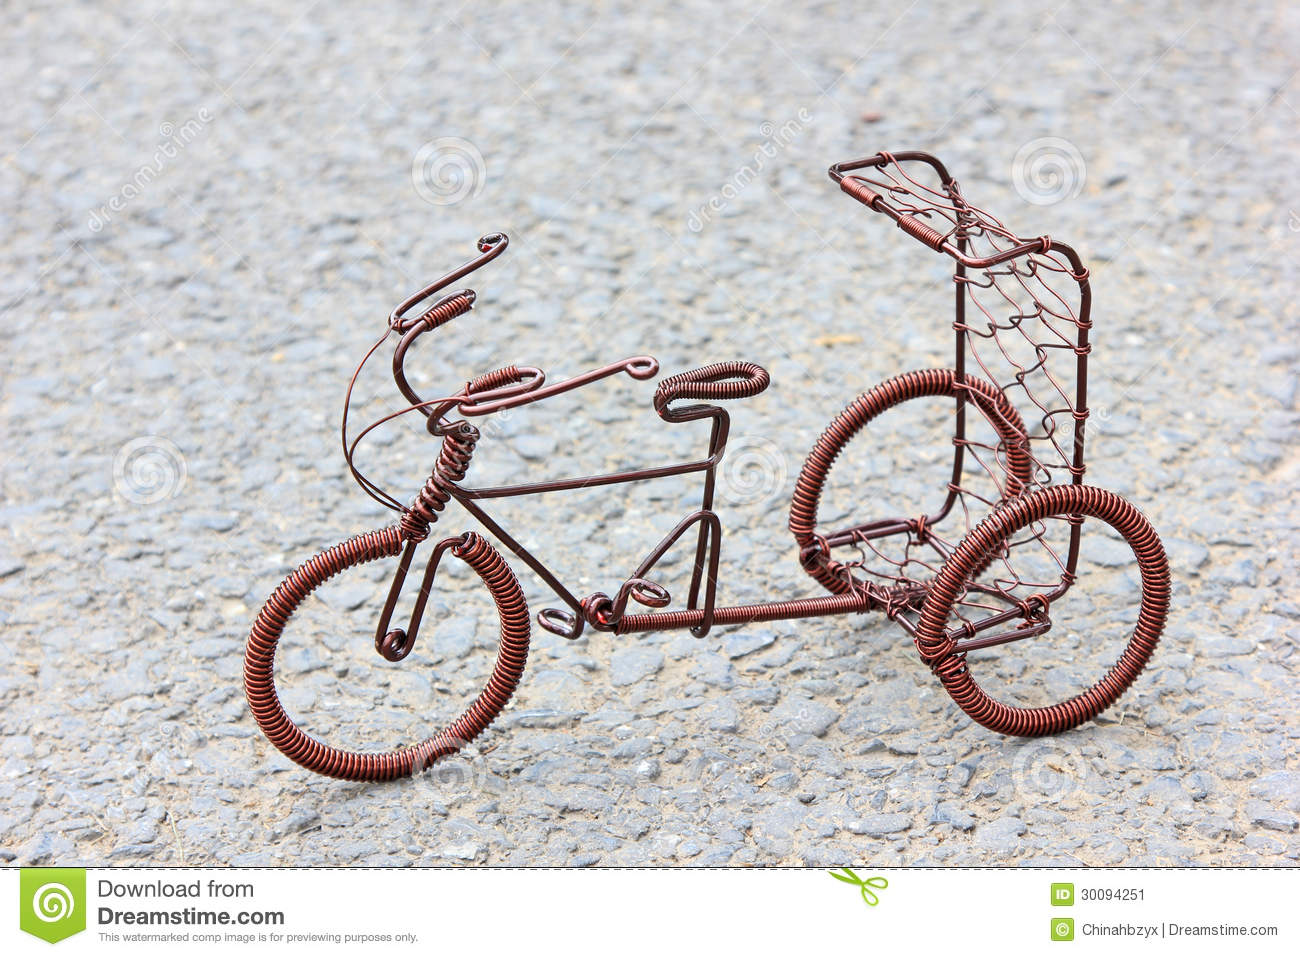 Toy Crafts Bicycle Made Of Copper Wire Stock Image - Image of ...